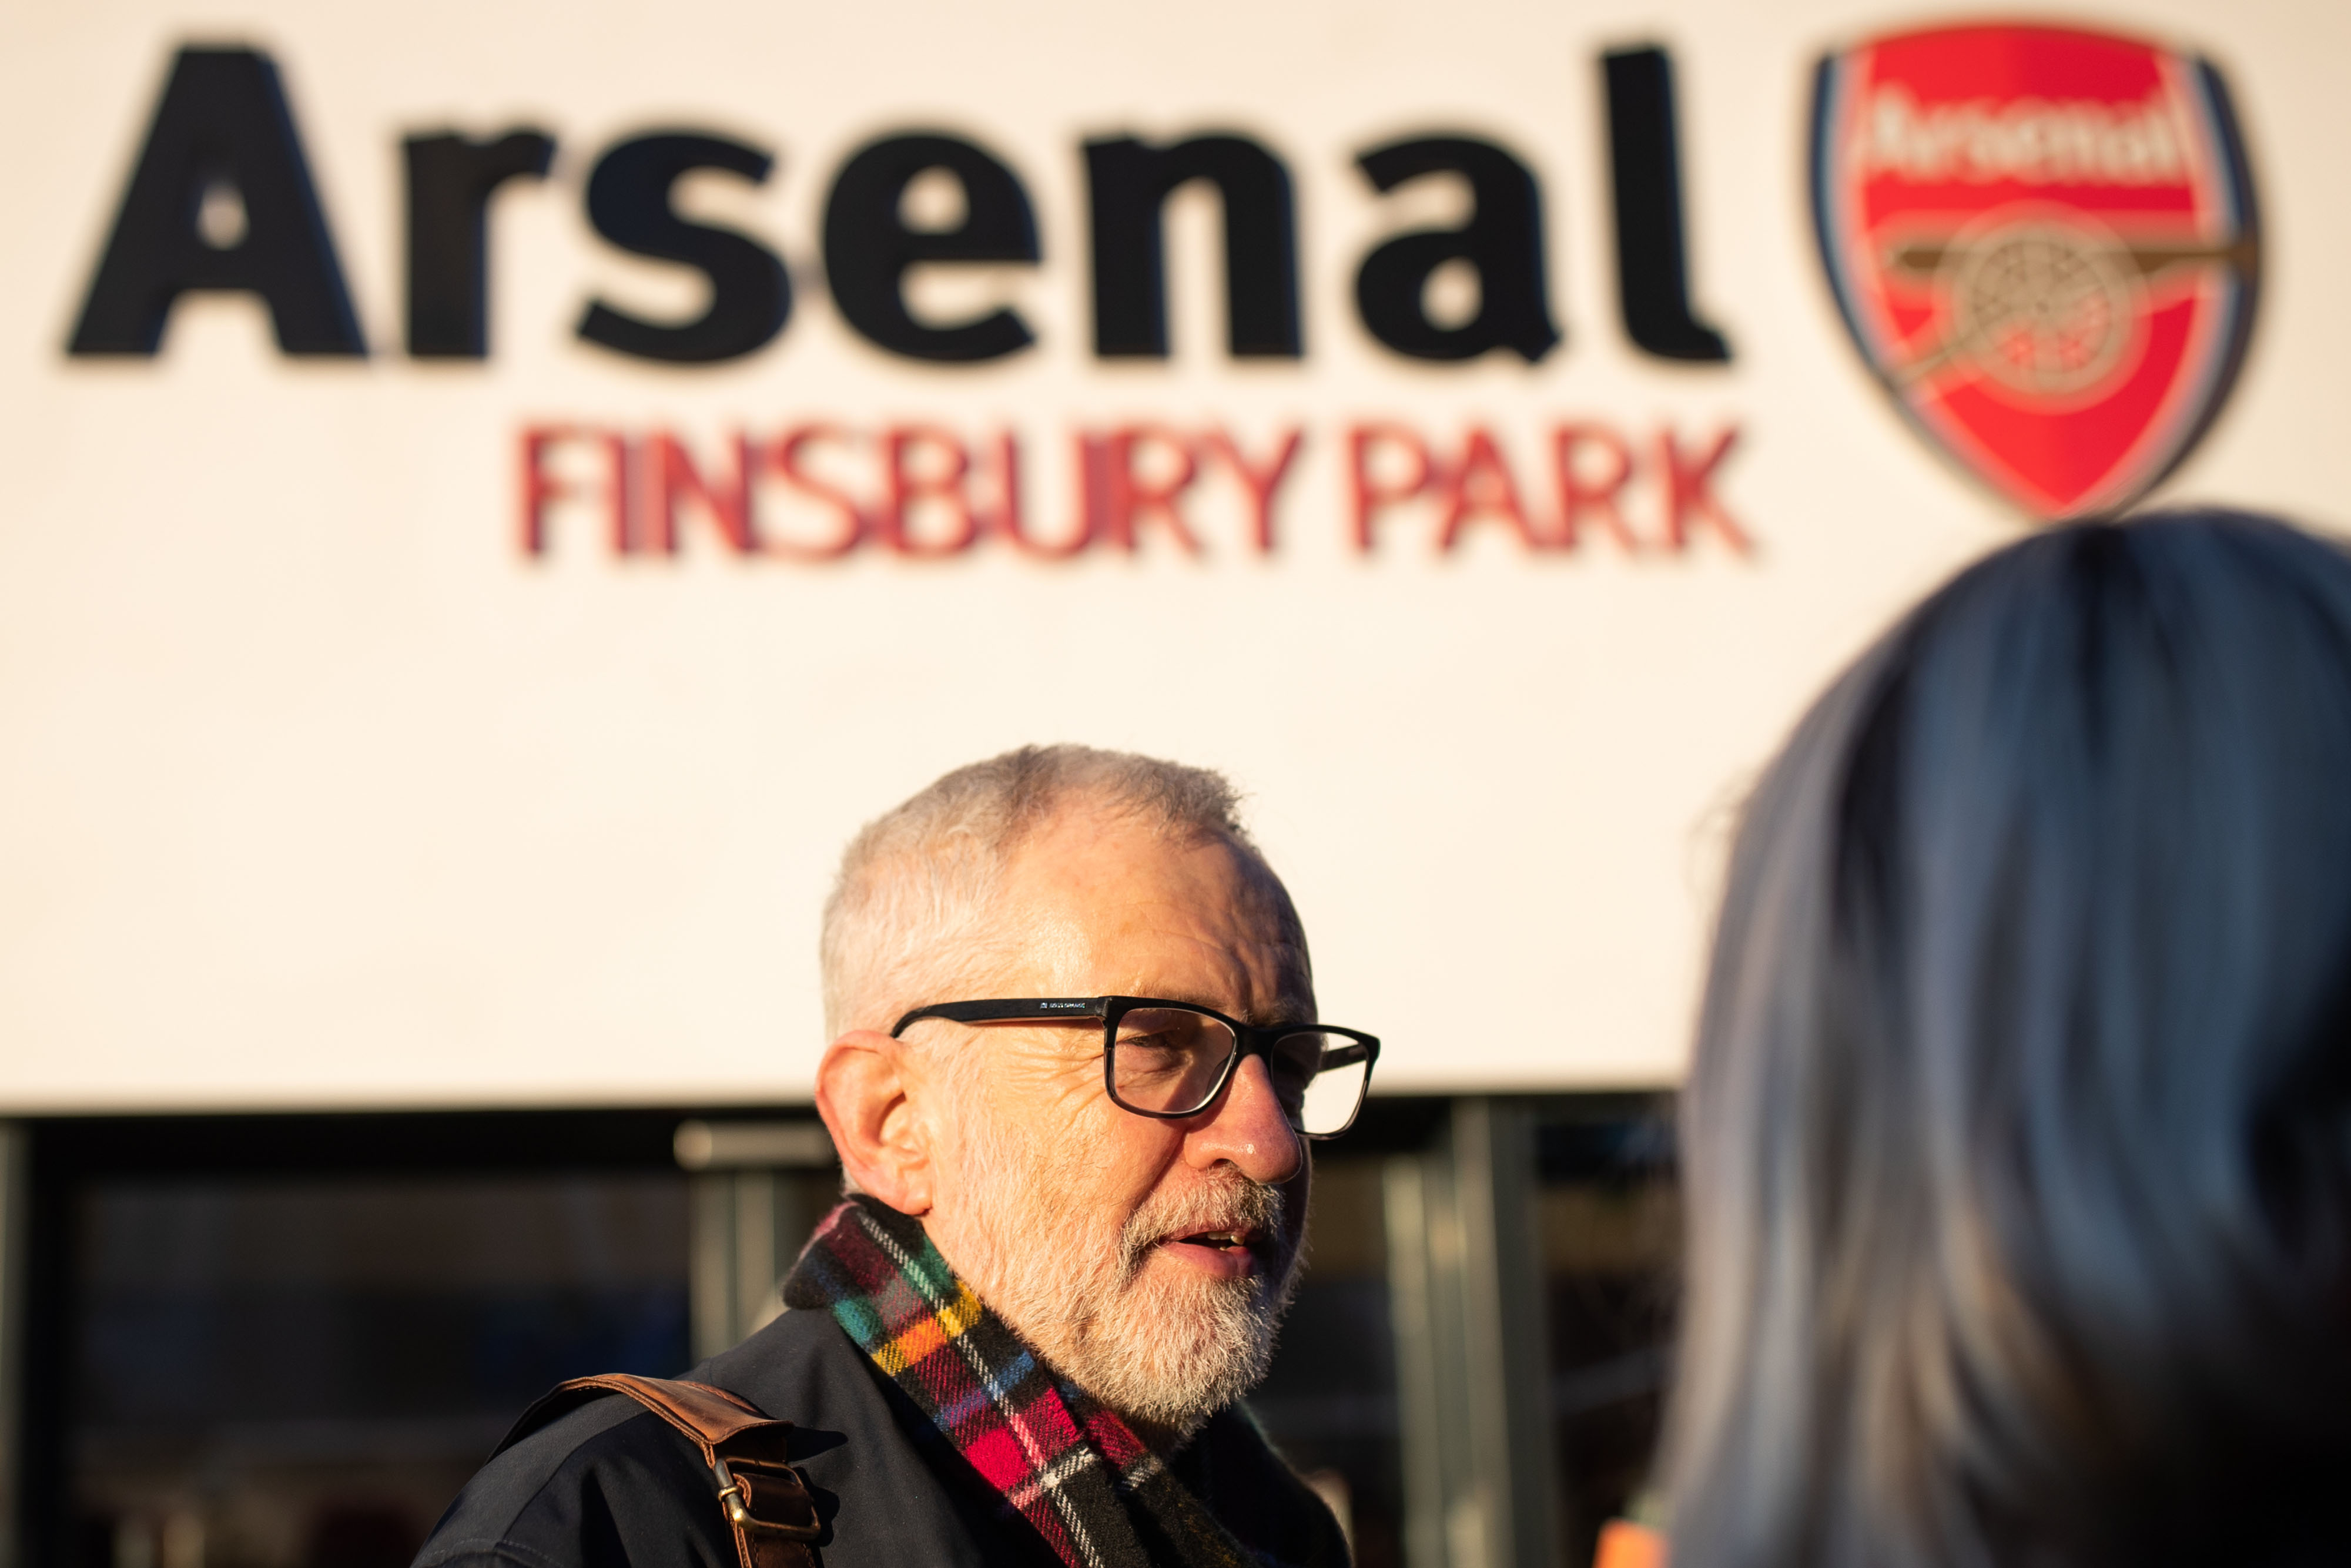 Labour leader, Jeremy Corbyn leafleting outside Finsbury Park station, London, whilst on the General Election campaign trail.